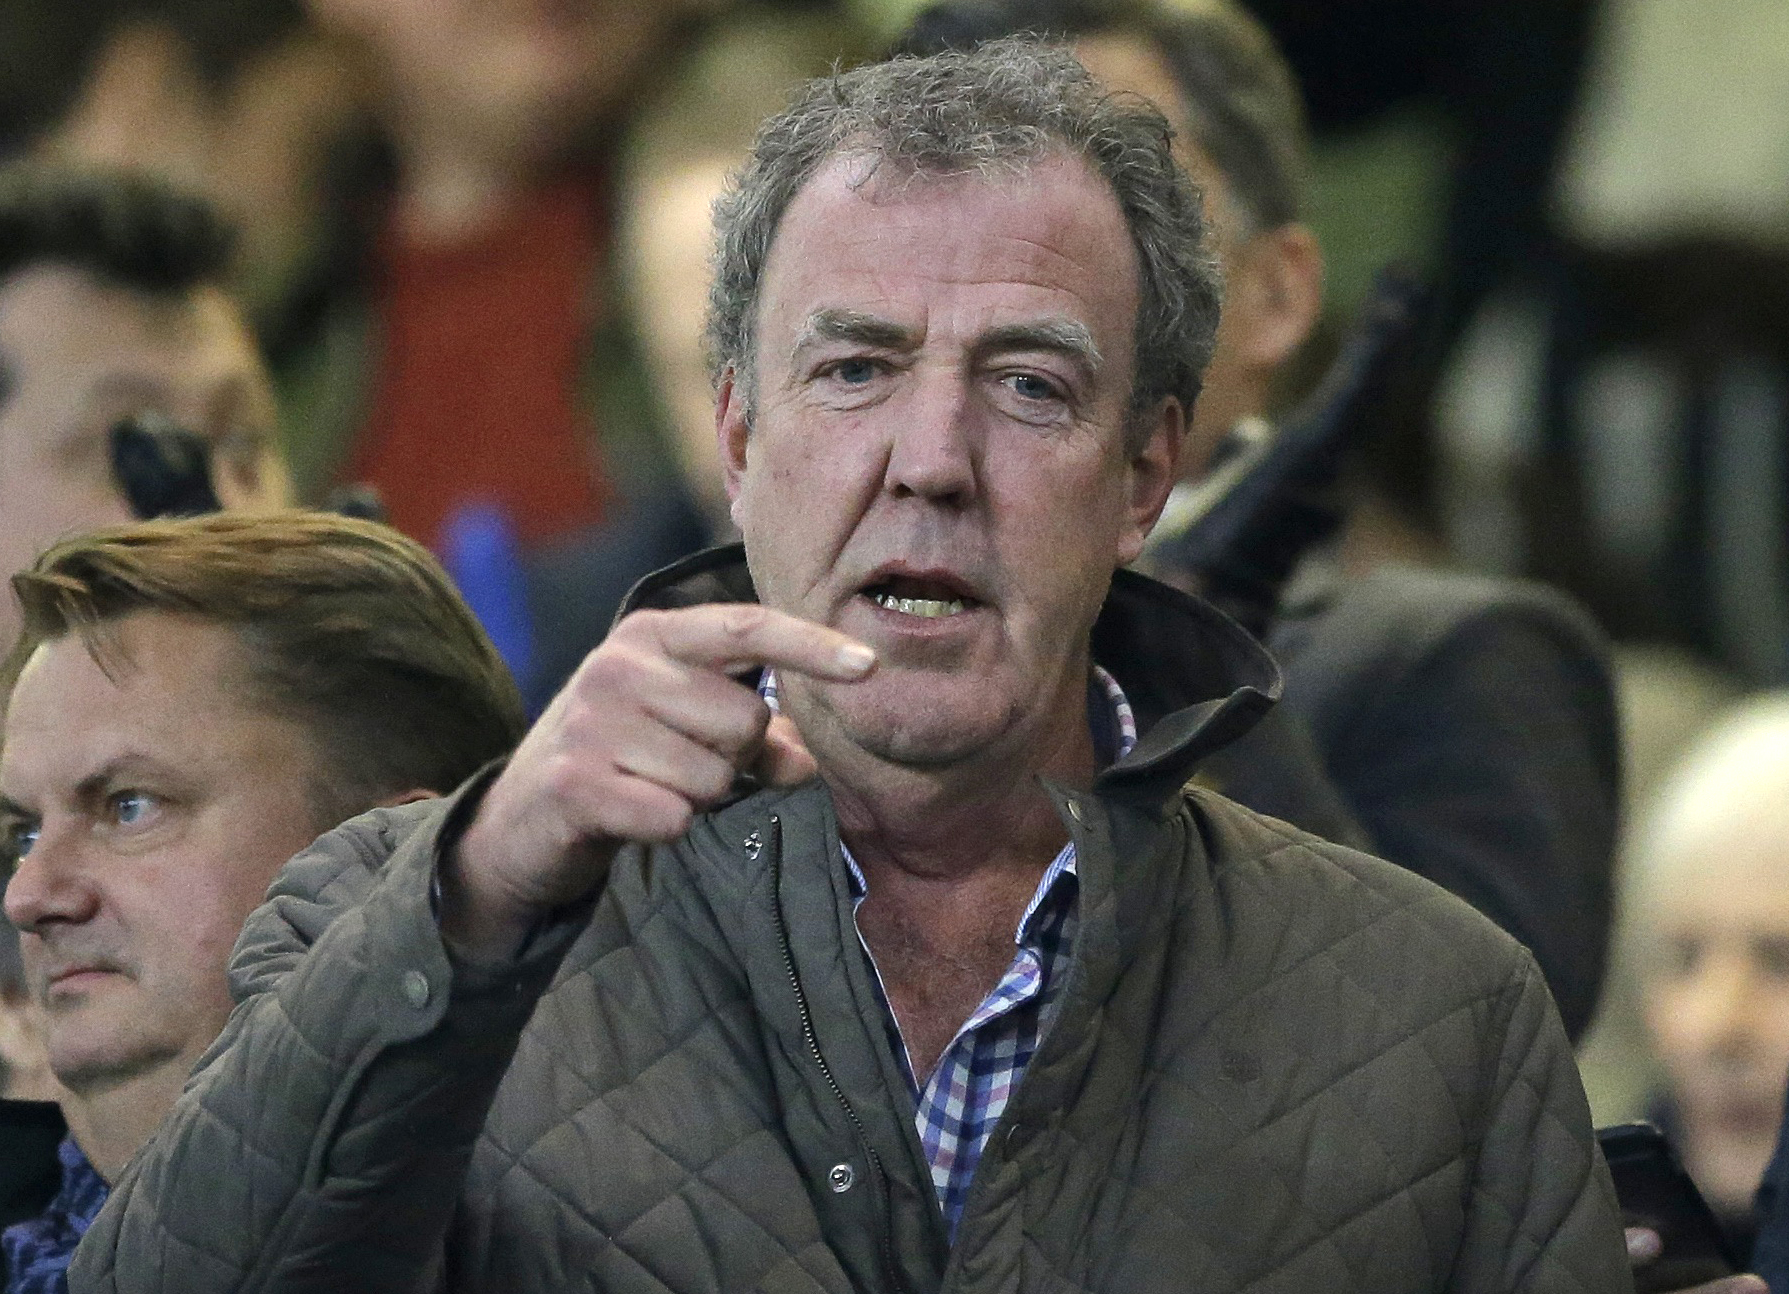 Russian military TV station offers job to Jeremy Clarkson